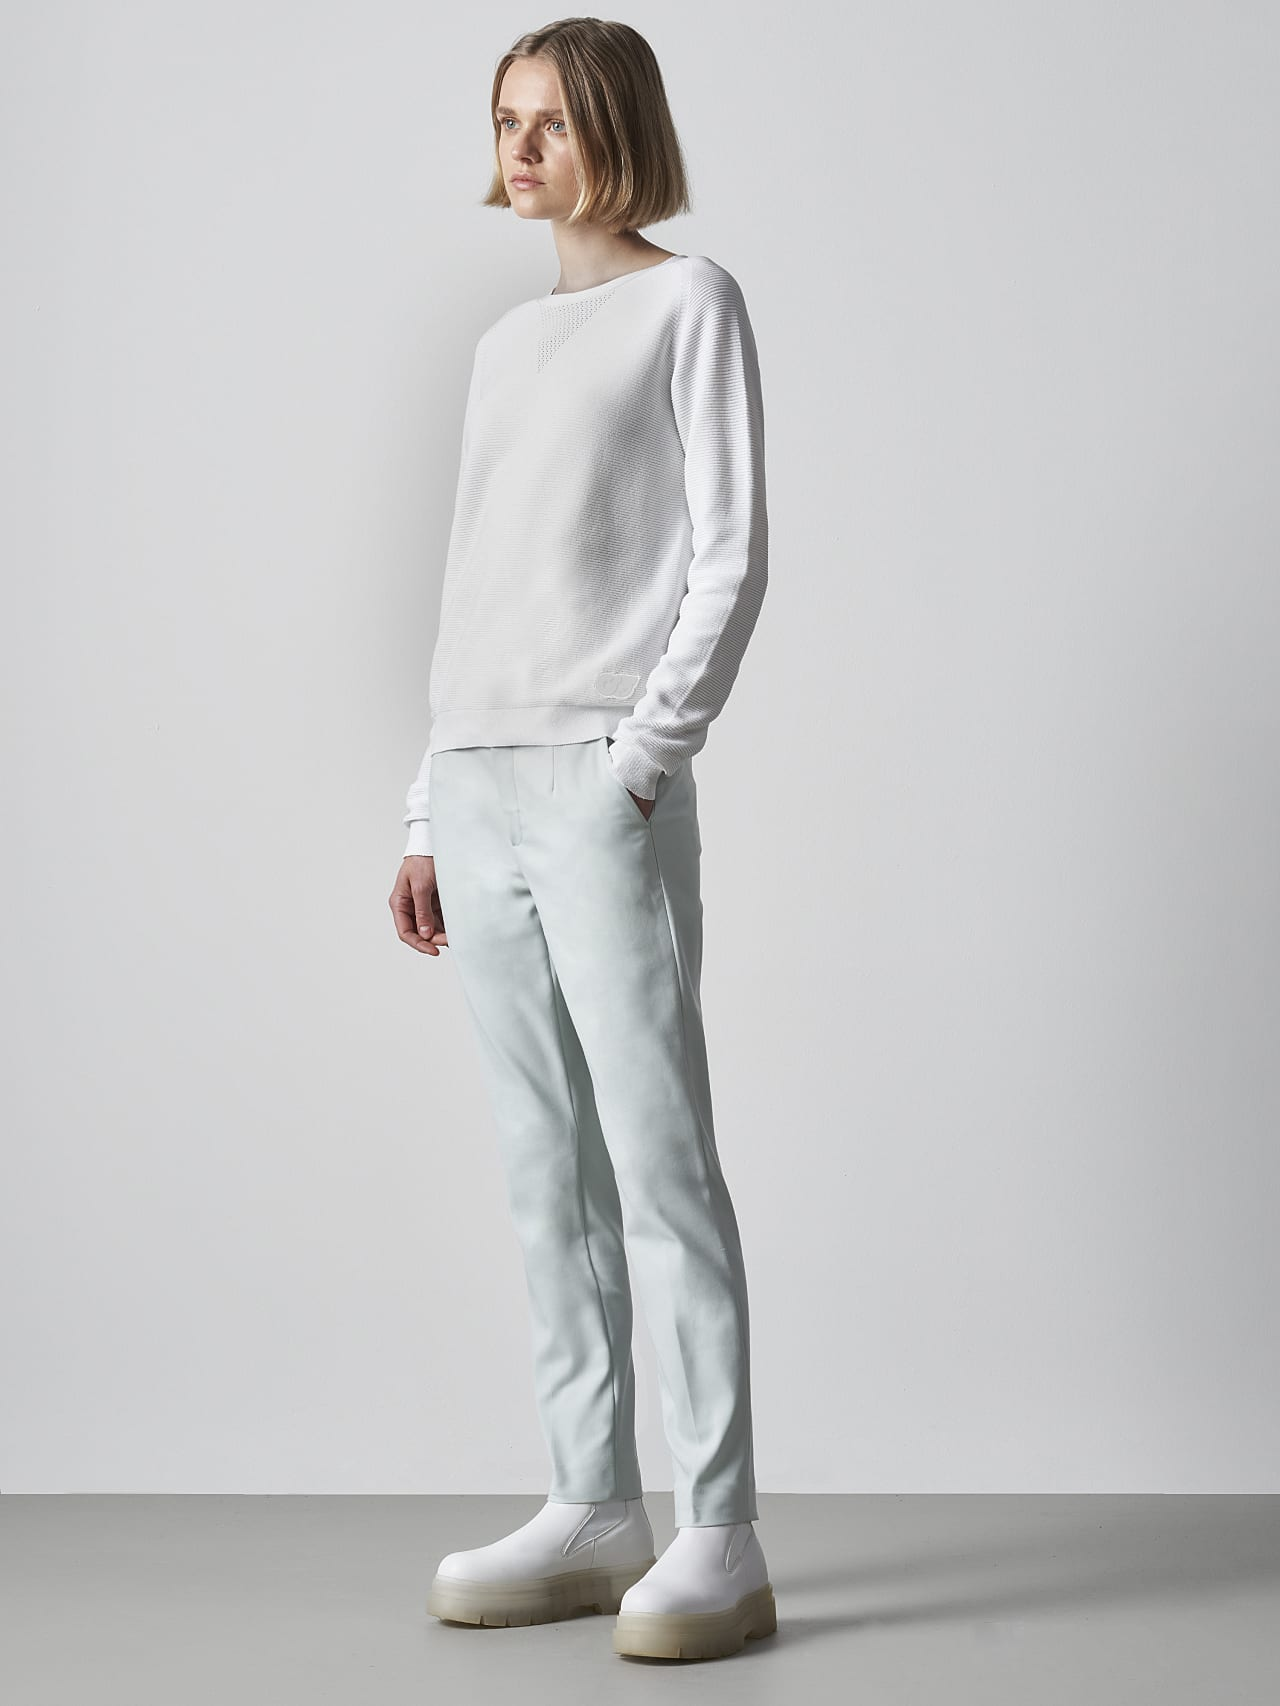 FINTEW V3.Y5.02 Seamless 3D Knit Jumper offwhite Front Alpha Tauri